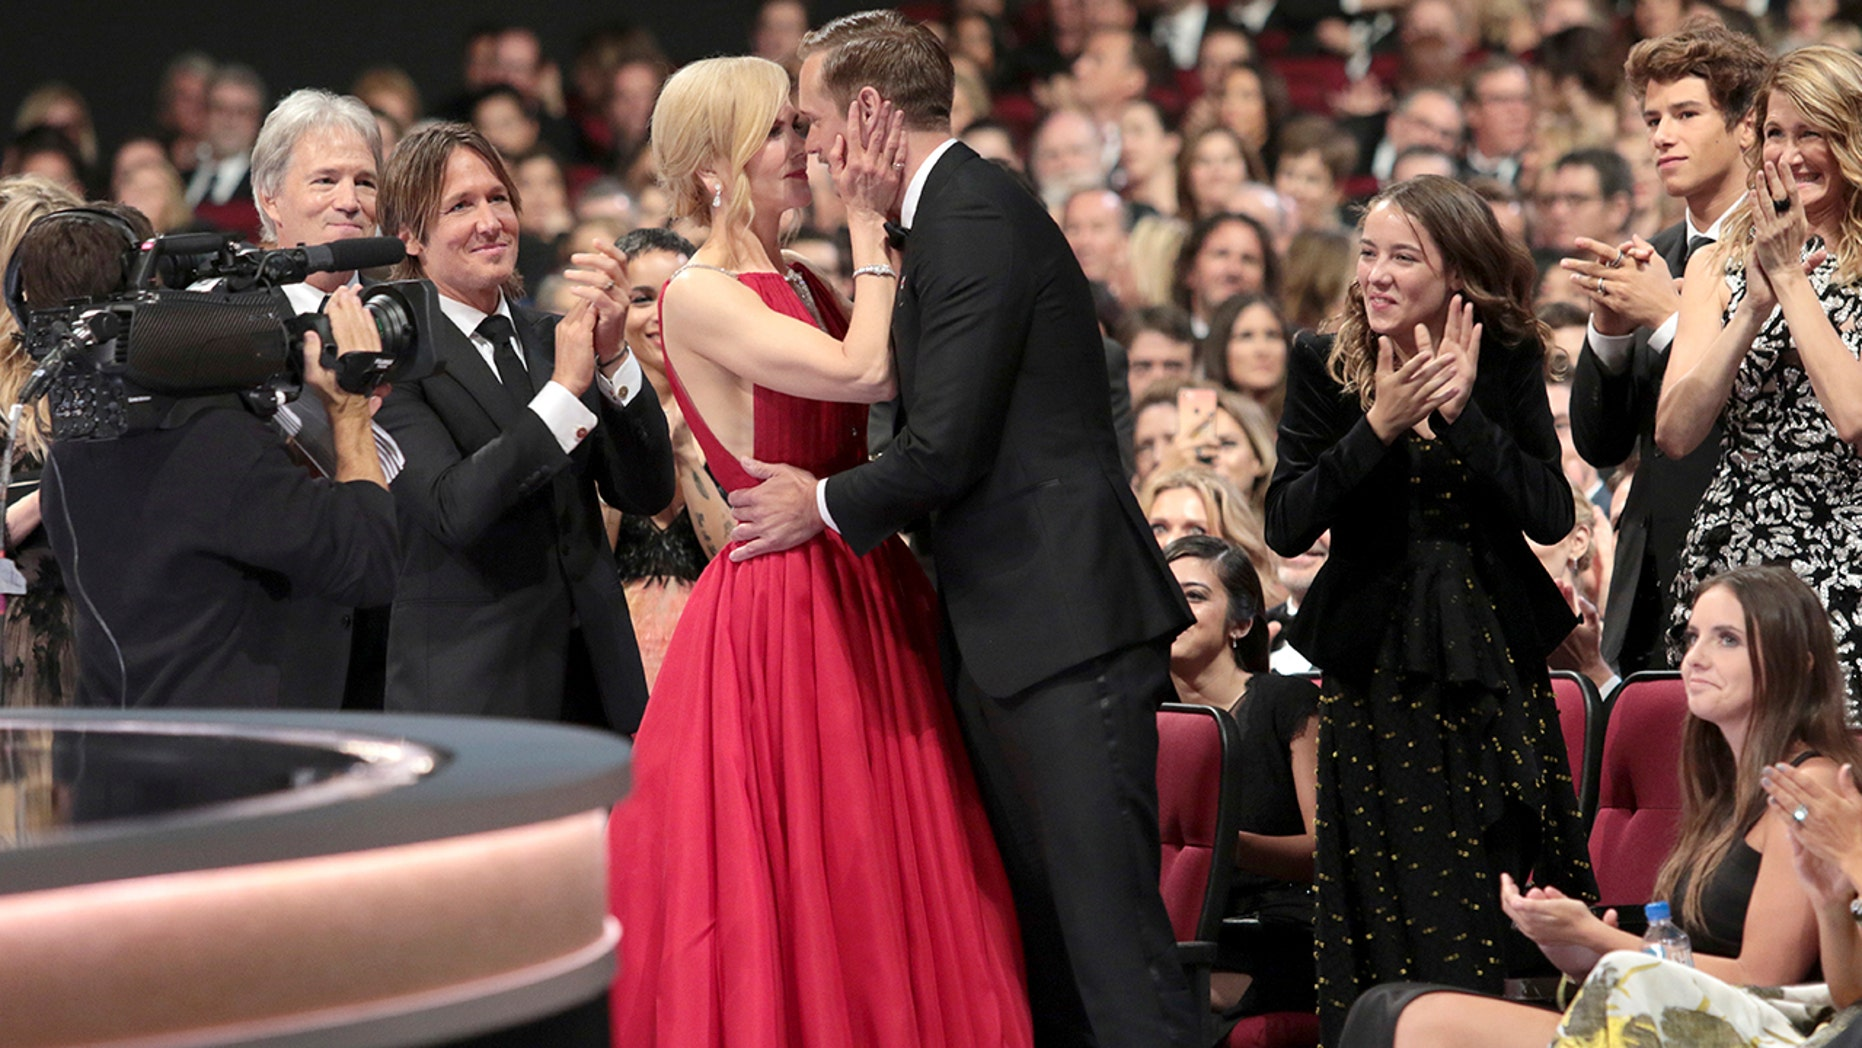 """IMAGE DISTRIBUTED FOR THE TELEVISION ACADEMY - Nicole Kidman, left, congratulates Alexander Skarsgard after winning the award for outstanding supporting actor in a limited series or a movie for """"Big Little Lies"""" at the 69th Primetime Emmy Awards on Sunday, Sept. 17, 2017, at the Microsoft Theater in Los Angeles. (Photo by Alex Berliner/Invision for the Television Academy/AP Images)"""